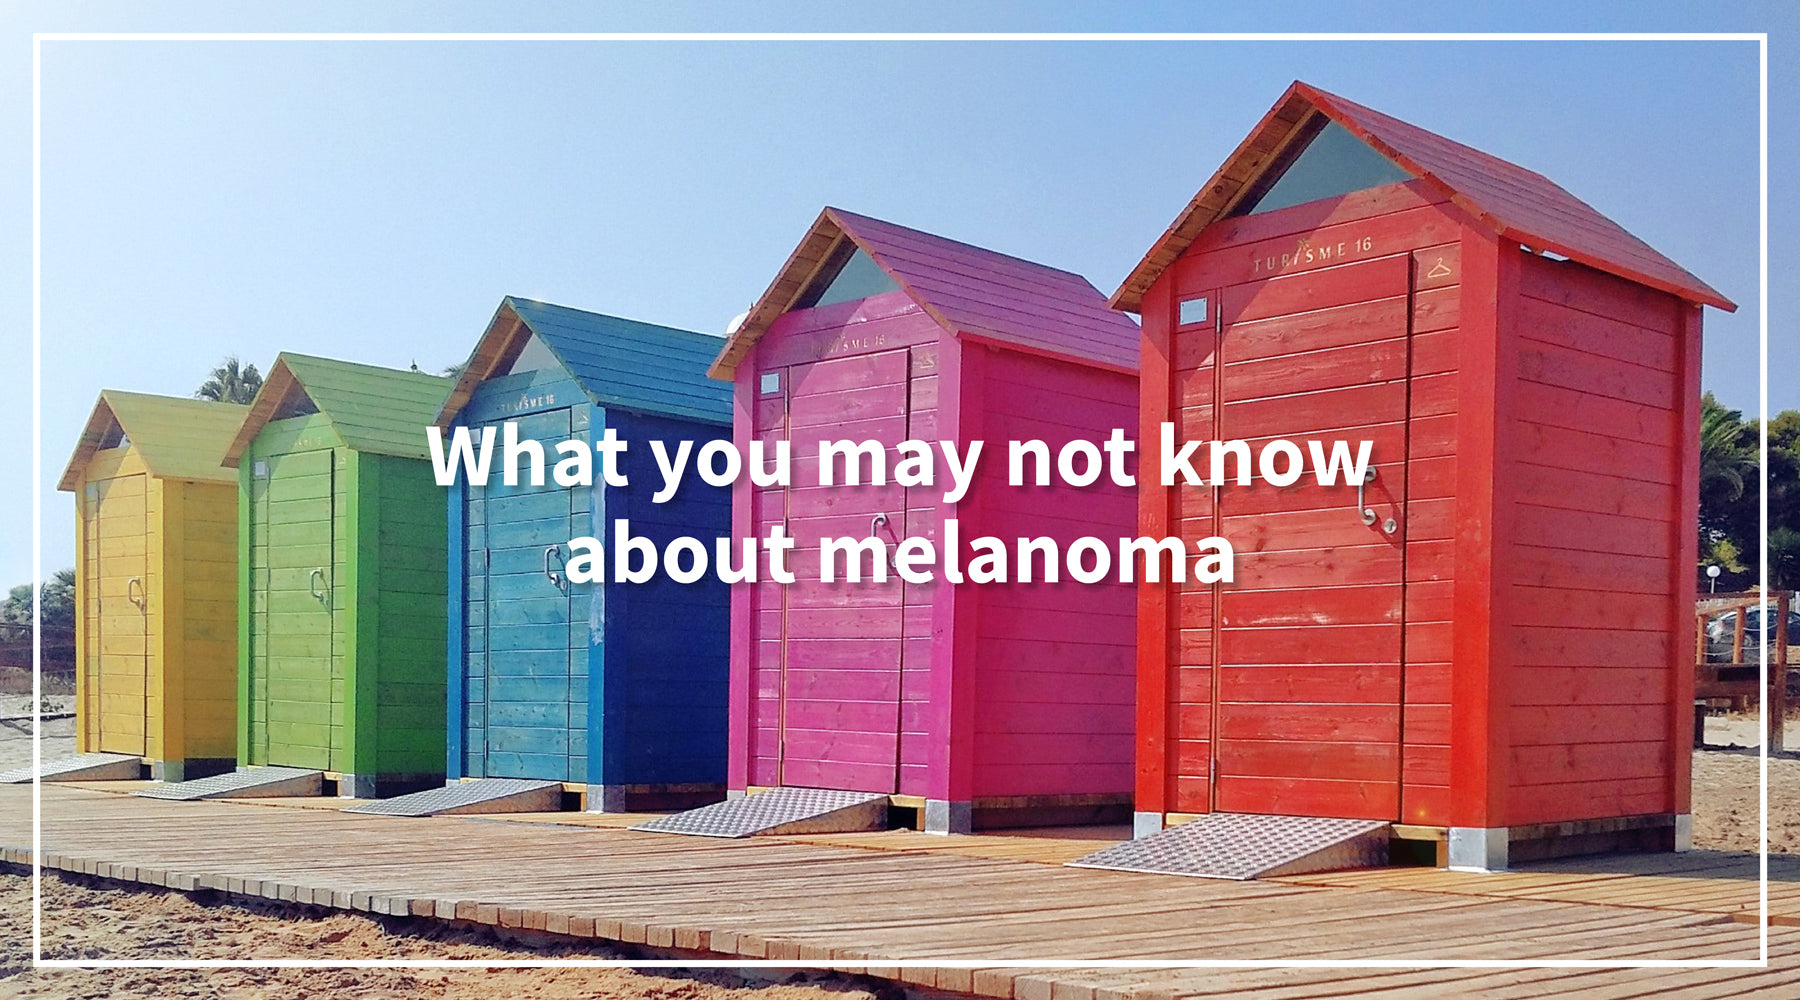 Solbari blog: What you may not know about melanoma